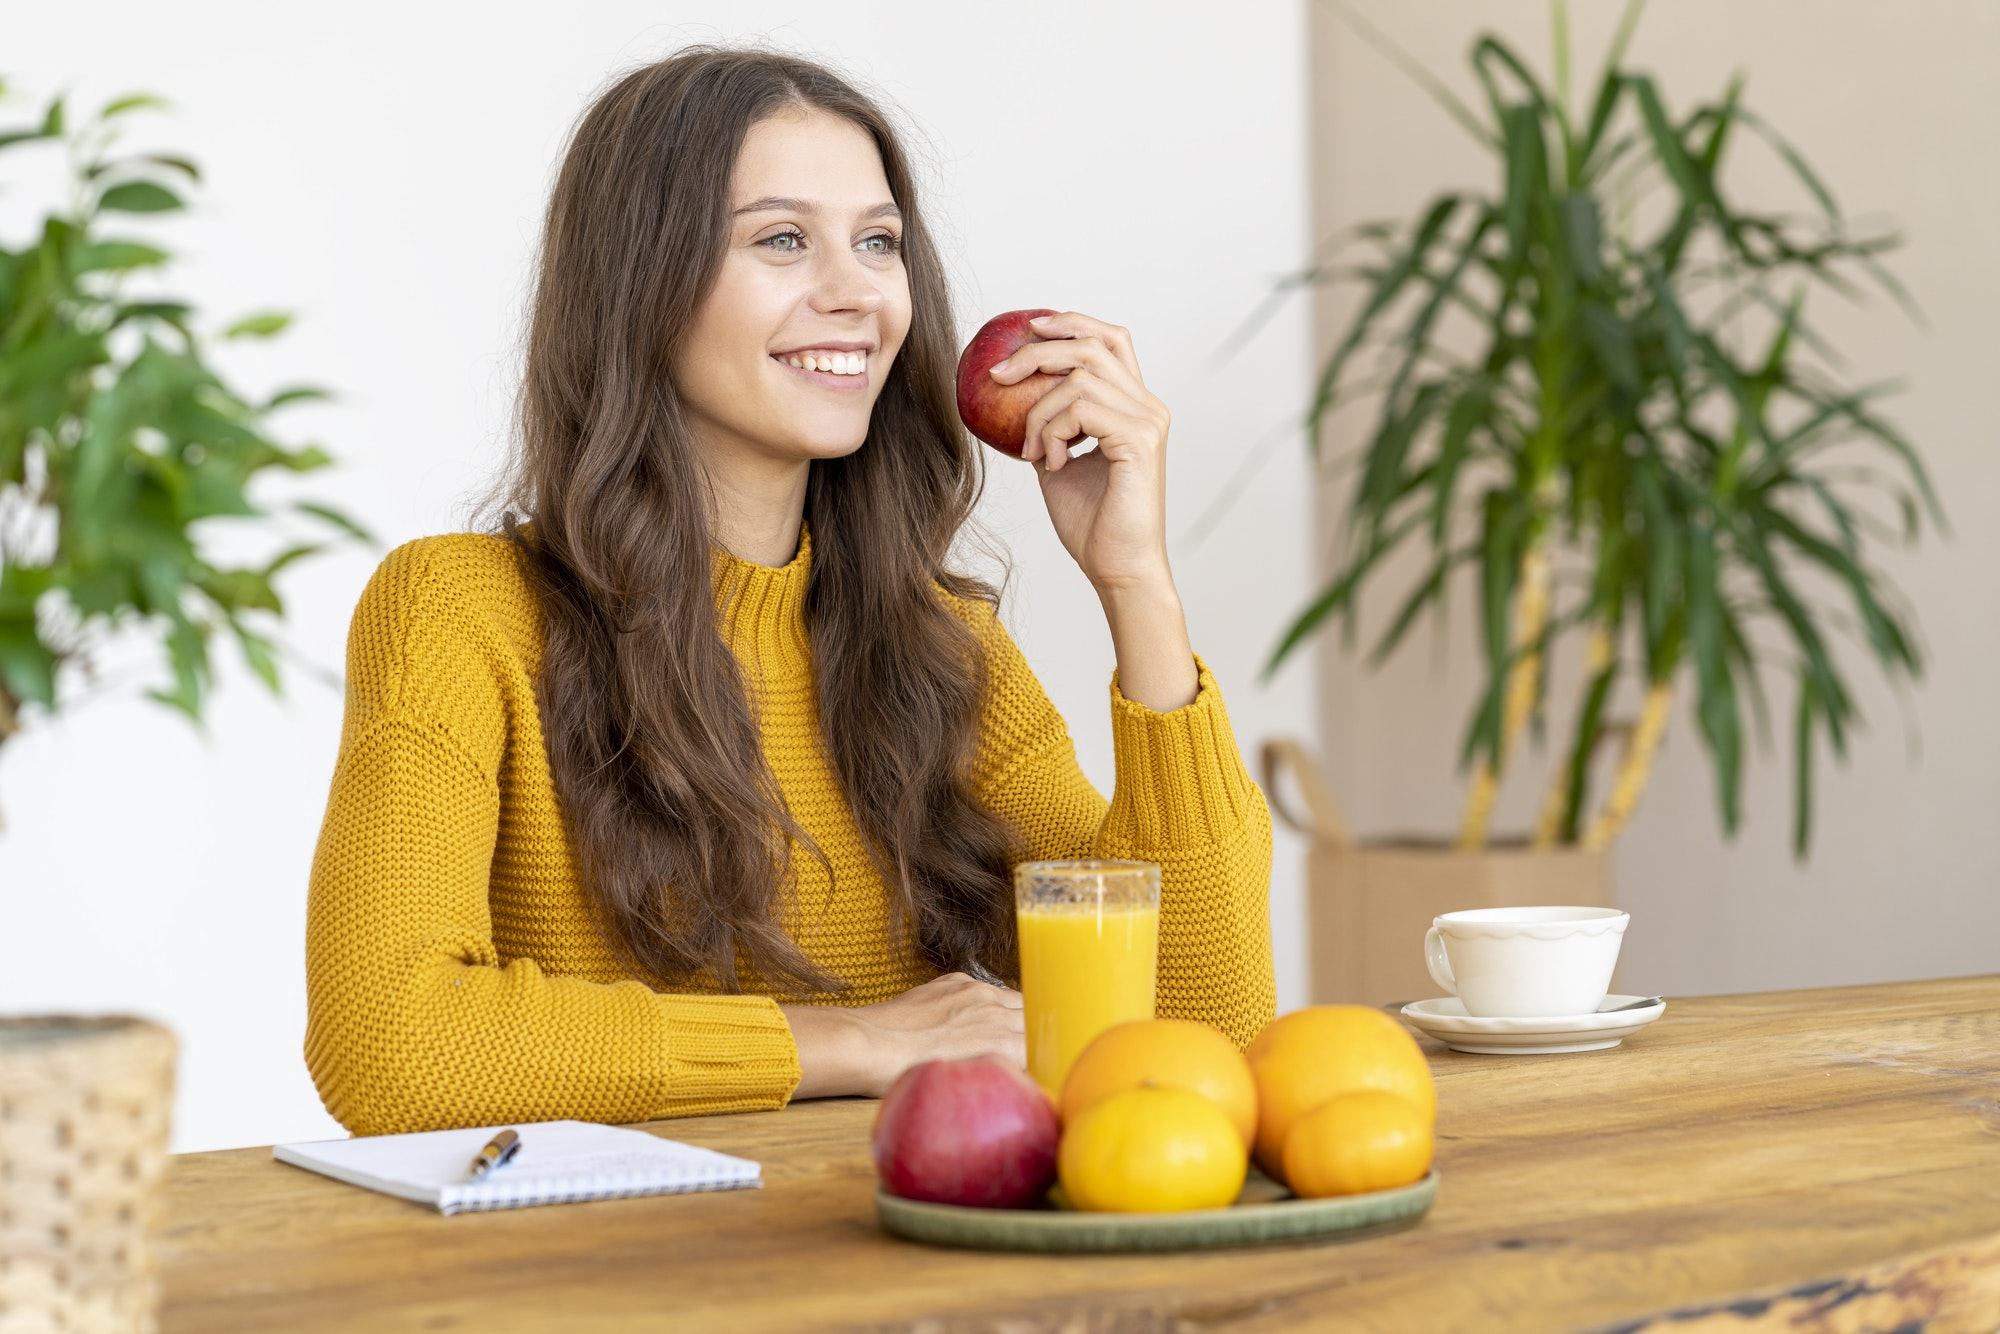 Young girl bitting red apple, smiling. Beautiful woman with long hair i